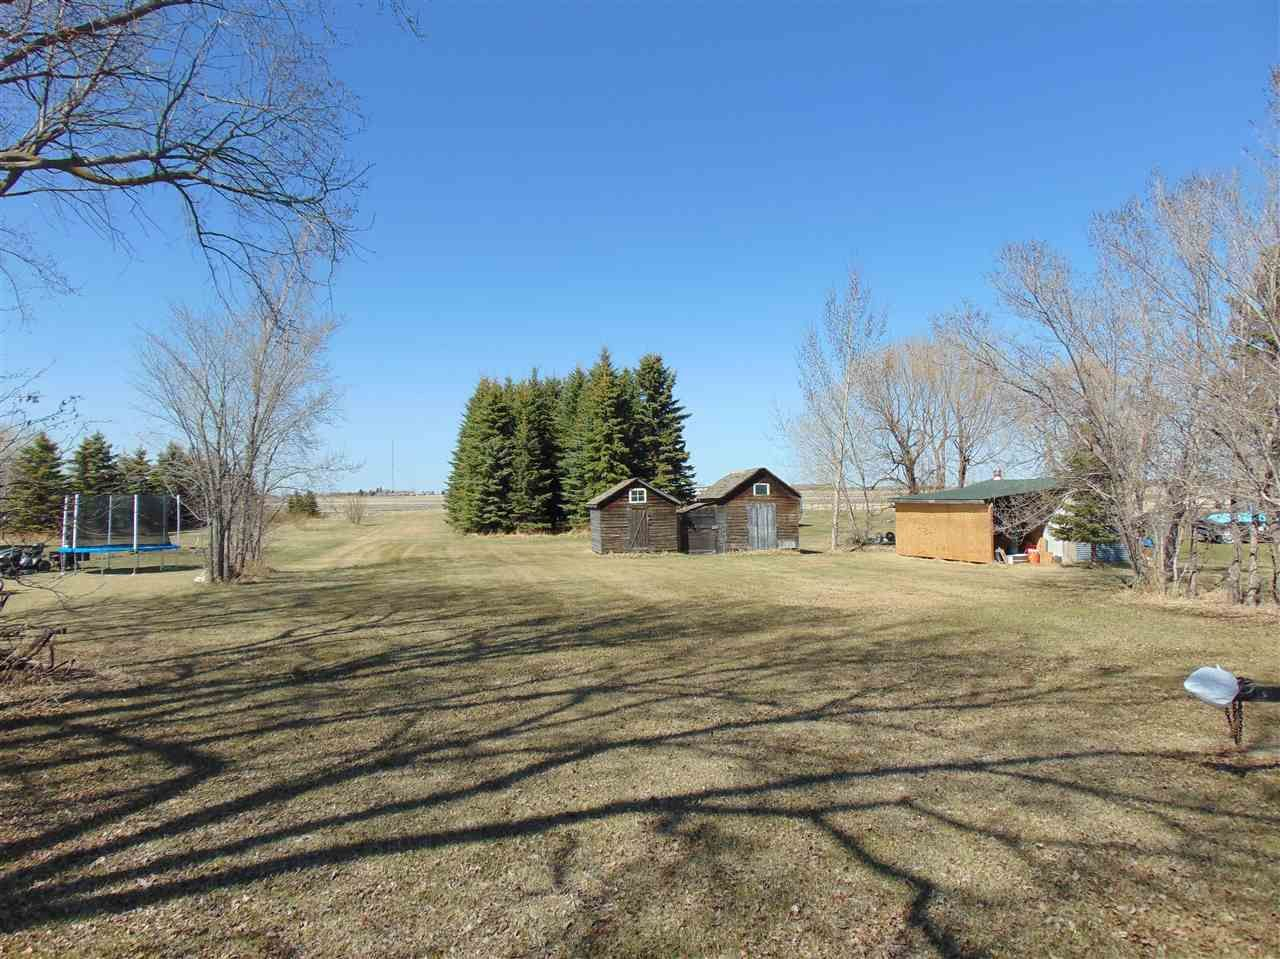 Main Photo: 4822 52 Avenue: Andrew Vacant Lot for sale : MLS®# E4260158